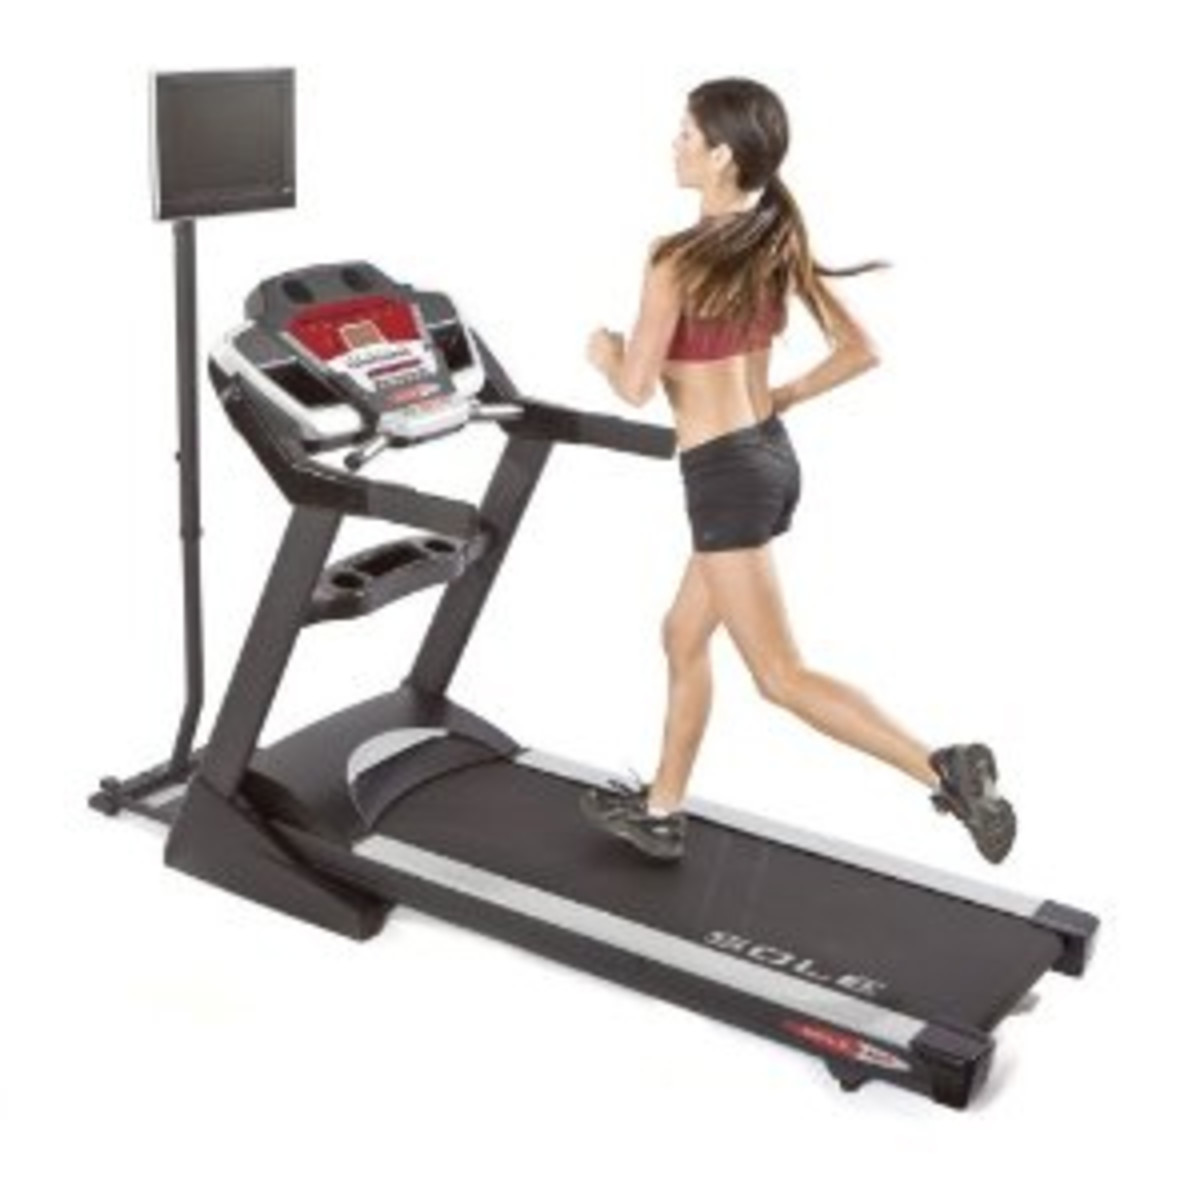 Treadmill With TV - LCD Television Treadmill TV Stands and Holders